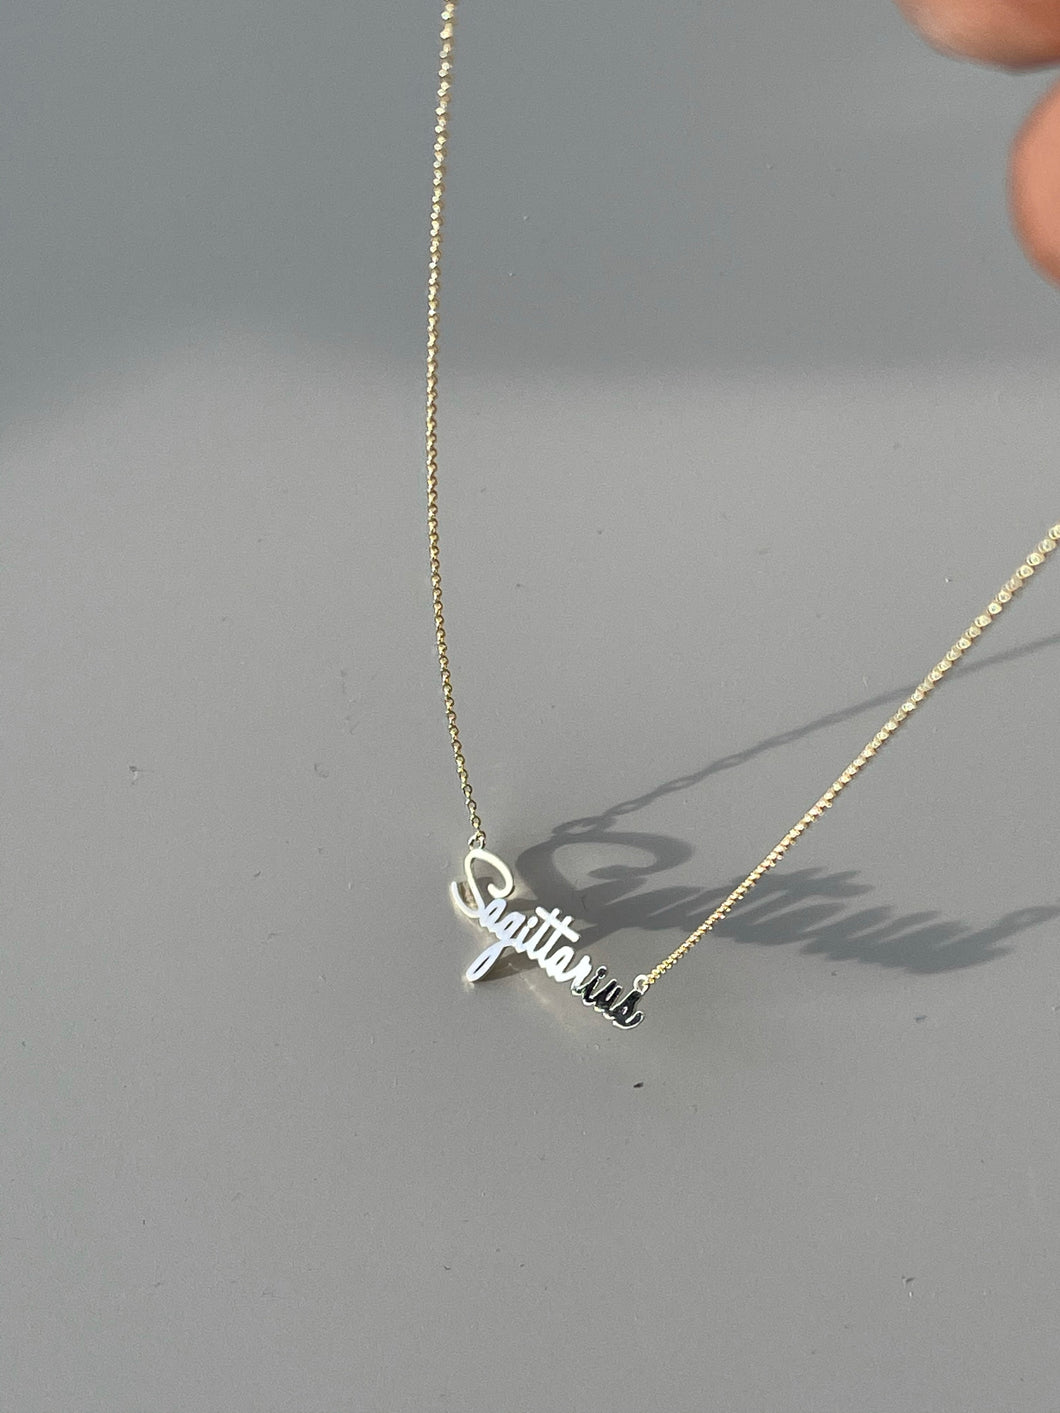 Sagittarius Charm Necklace In Gold